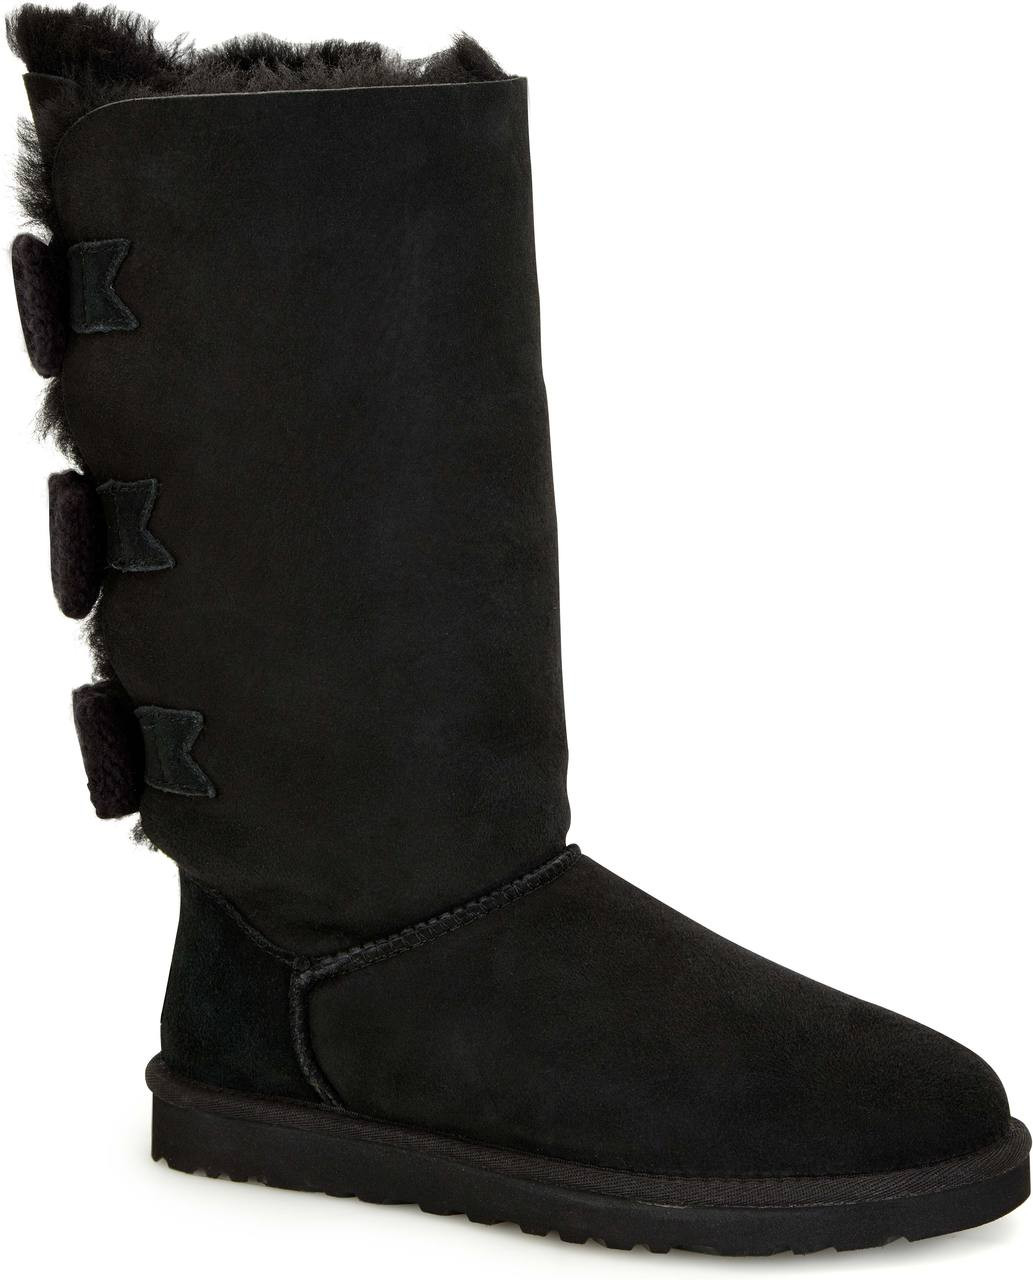 black uggs with bows women